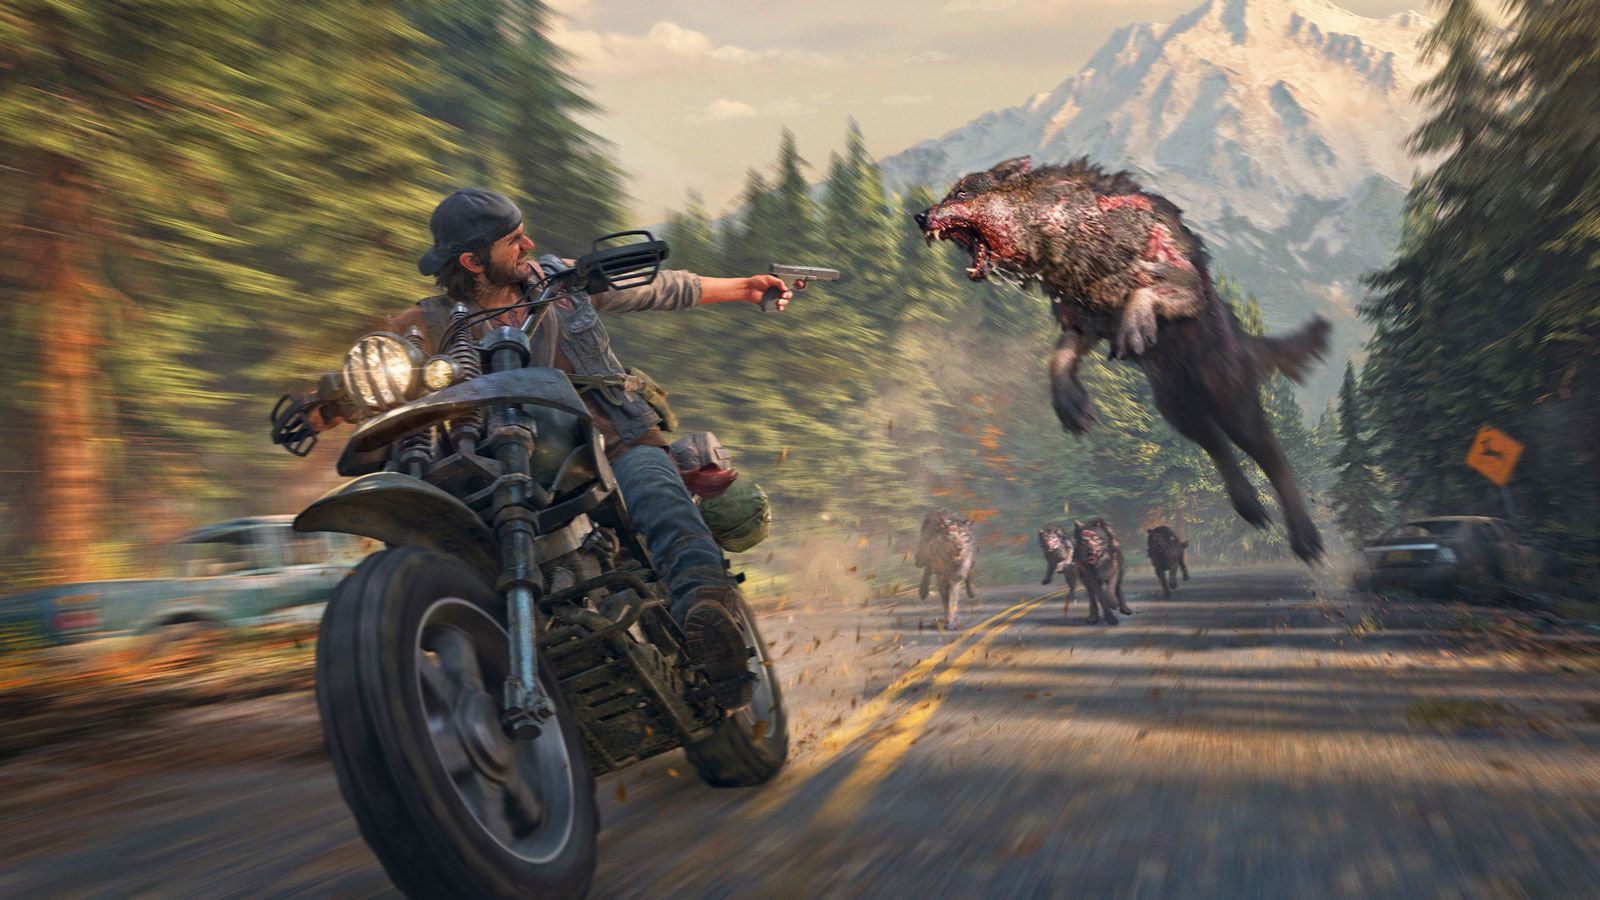 Latest Days Gone Update is Over 30 GB, But it Drastically Reduces the Game's Overall File Size